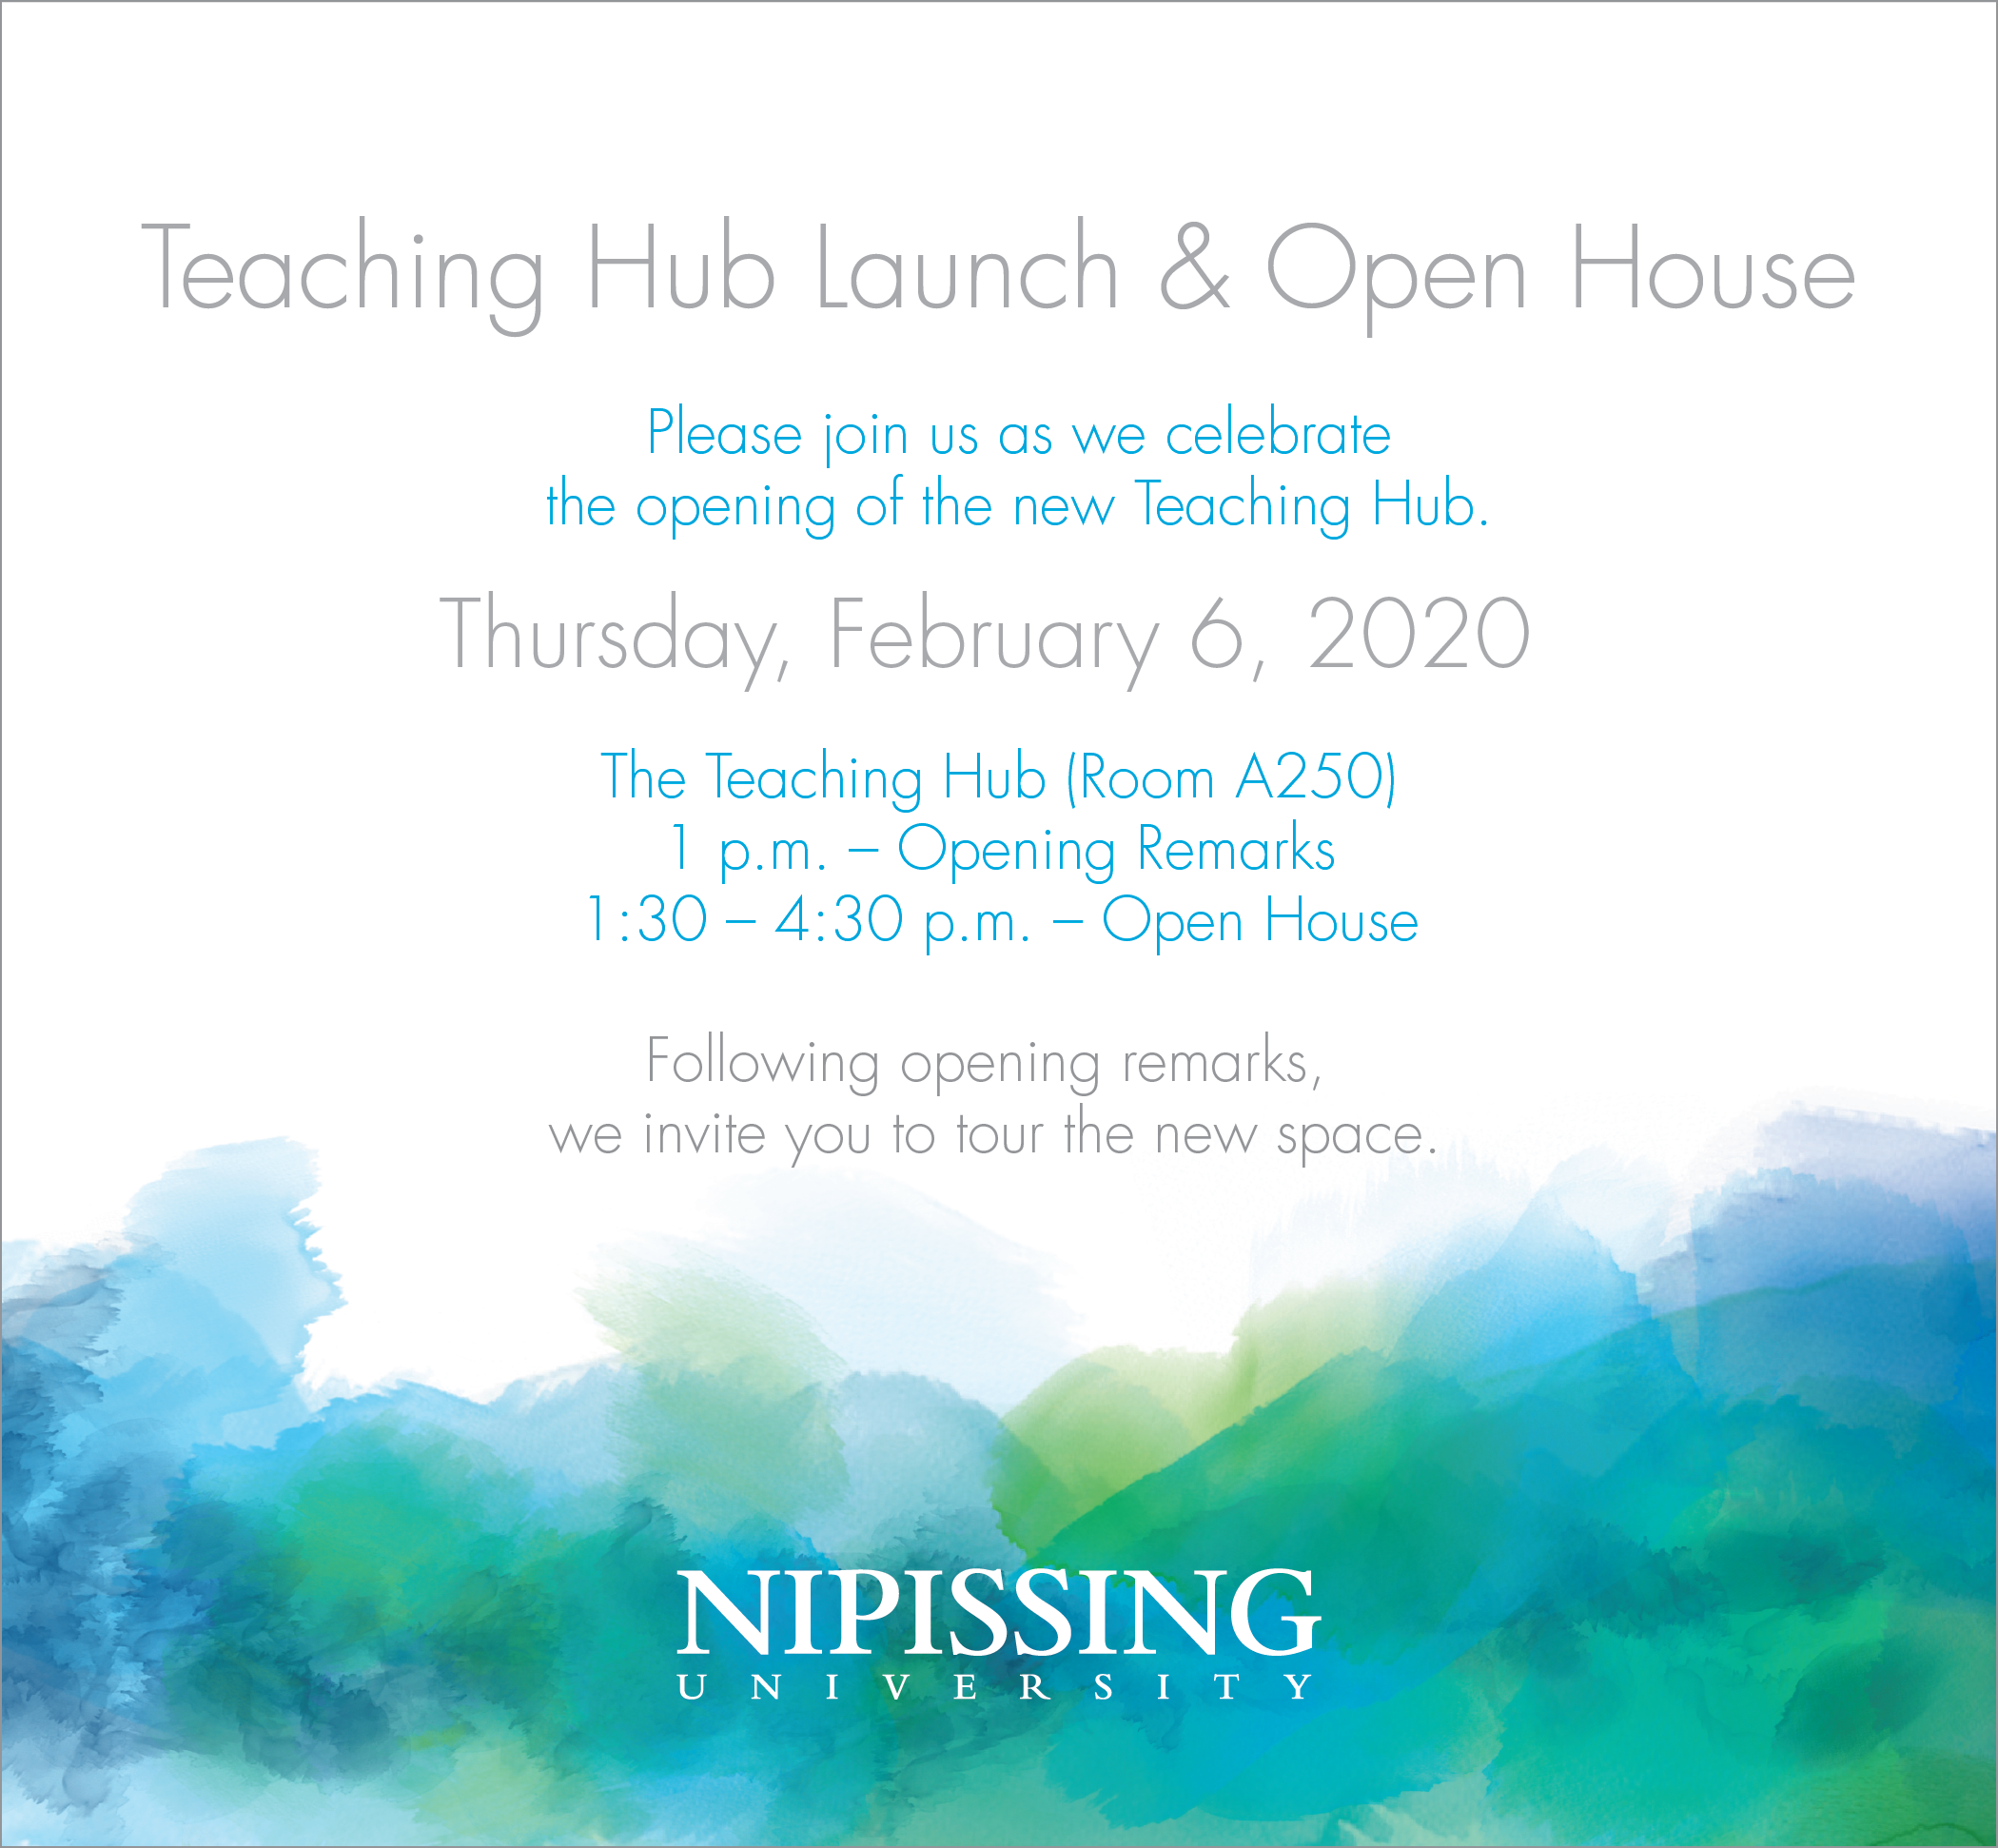 Teaching Hub Launch and Open House